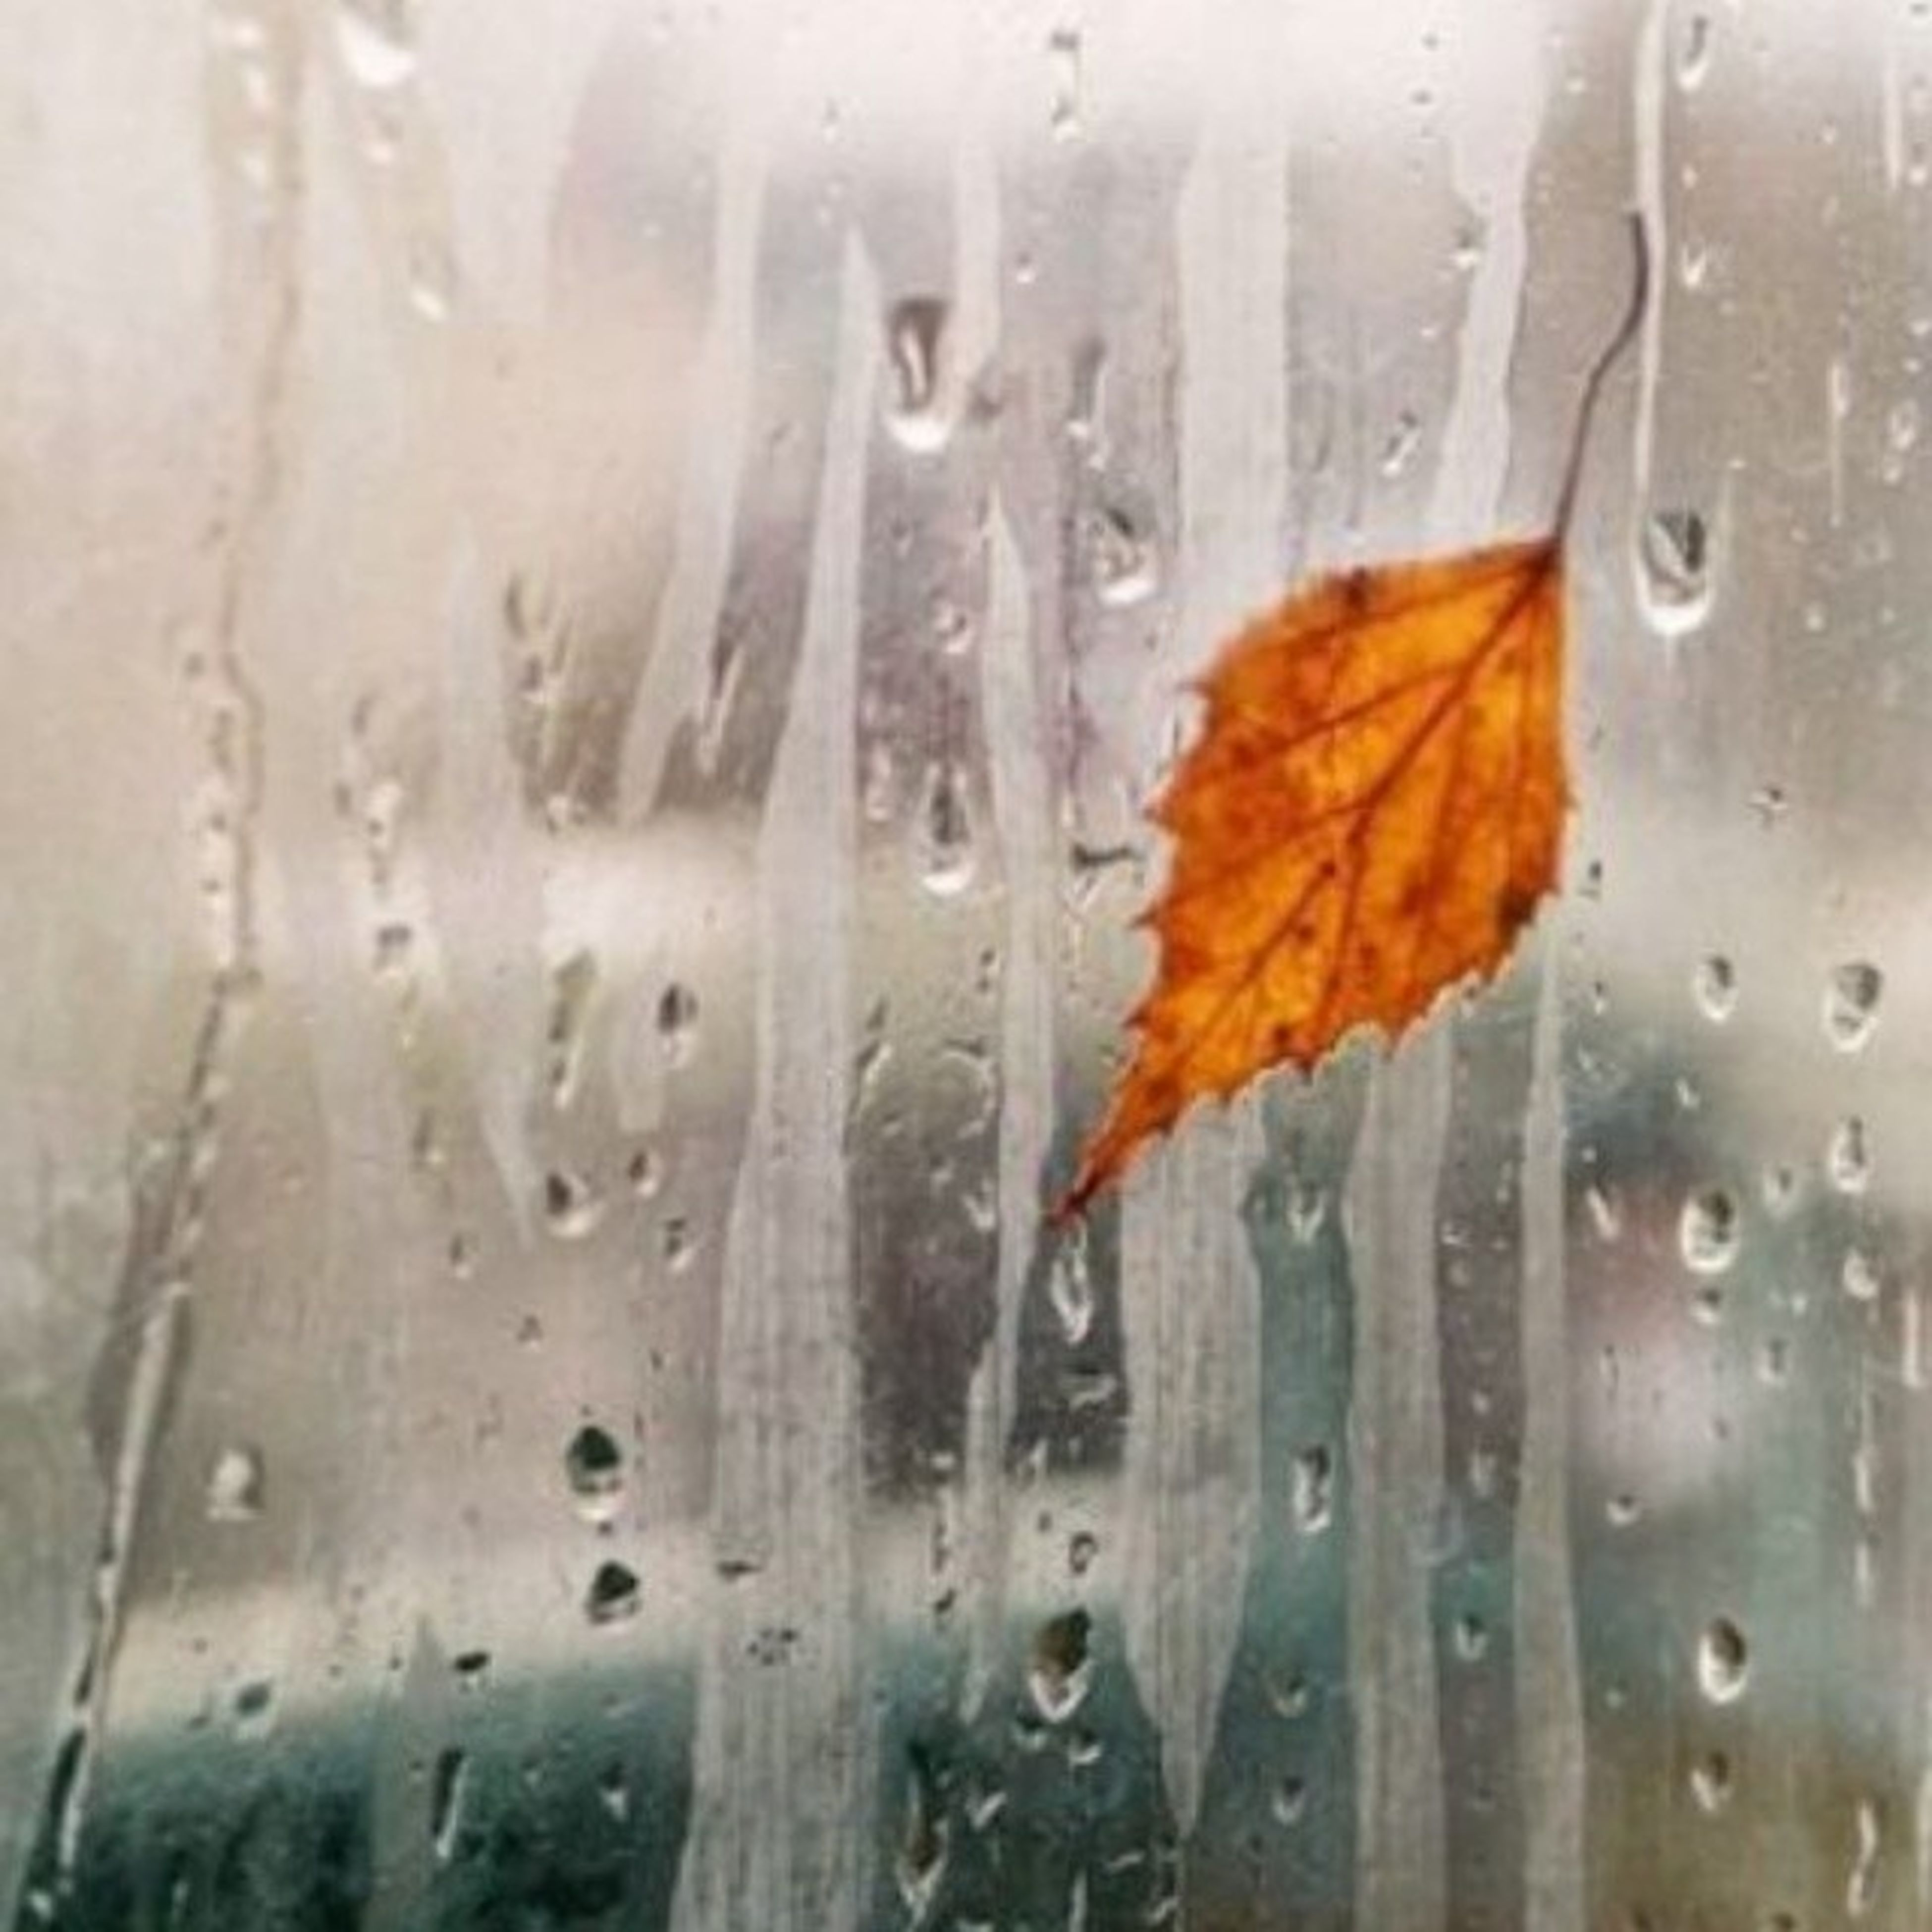 drop, wet, window, rain, season, glass - material, transparent, weather, water, full frame, backgrounds, indoors, raindrop, close-up, glass, monsoon, focus on foreground, condensation, rainy season, droplet